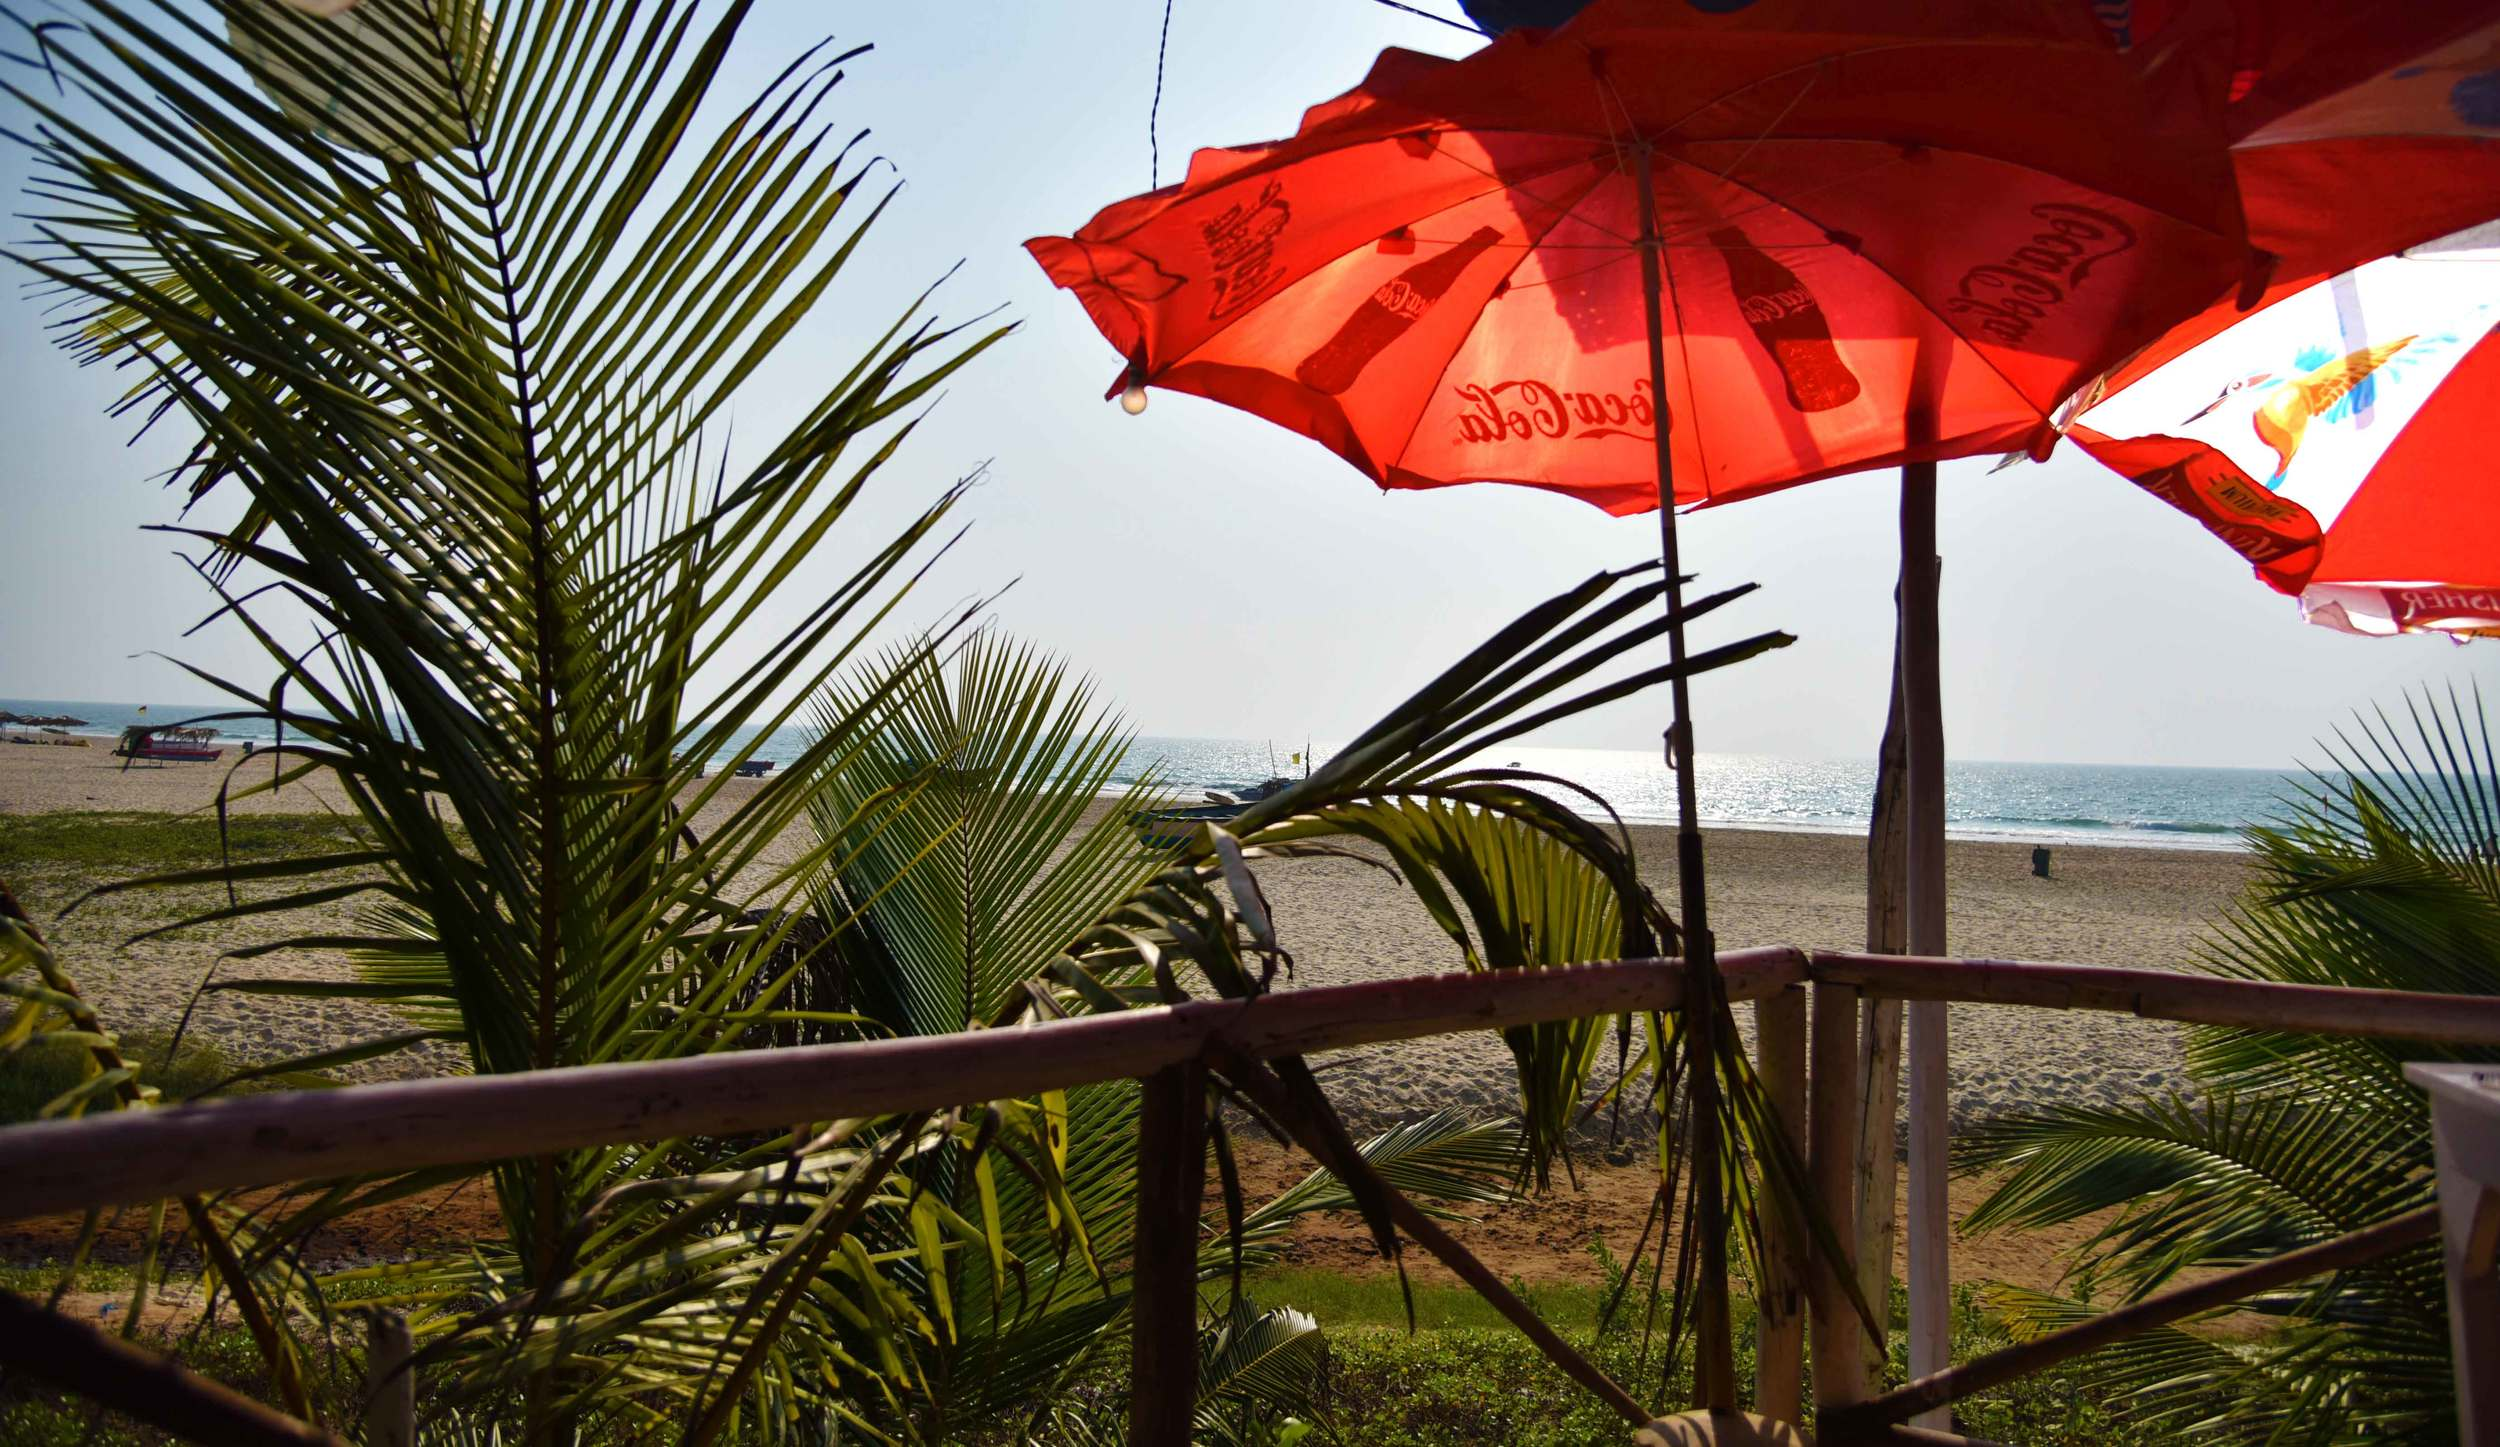 Zeebop by the sea, restaurants next to Park Hyatt Hotel, Goa, image©thingstodot.com